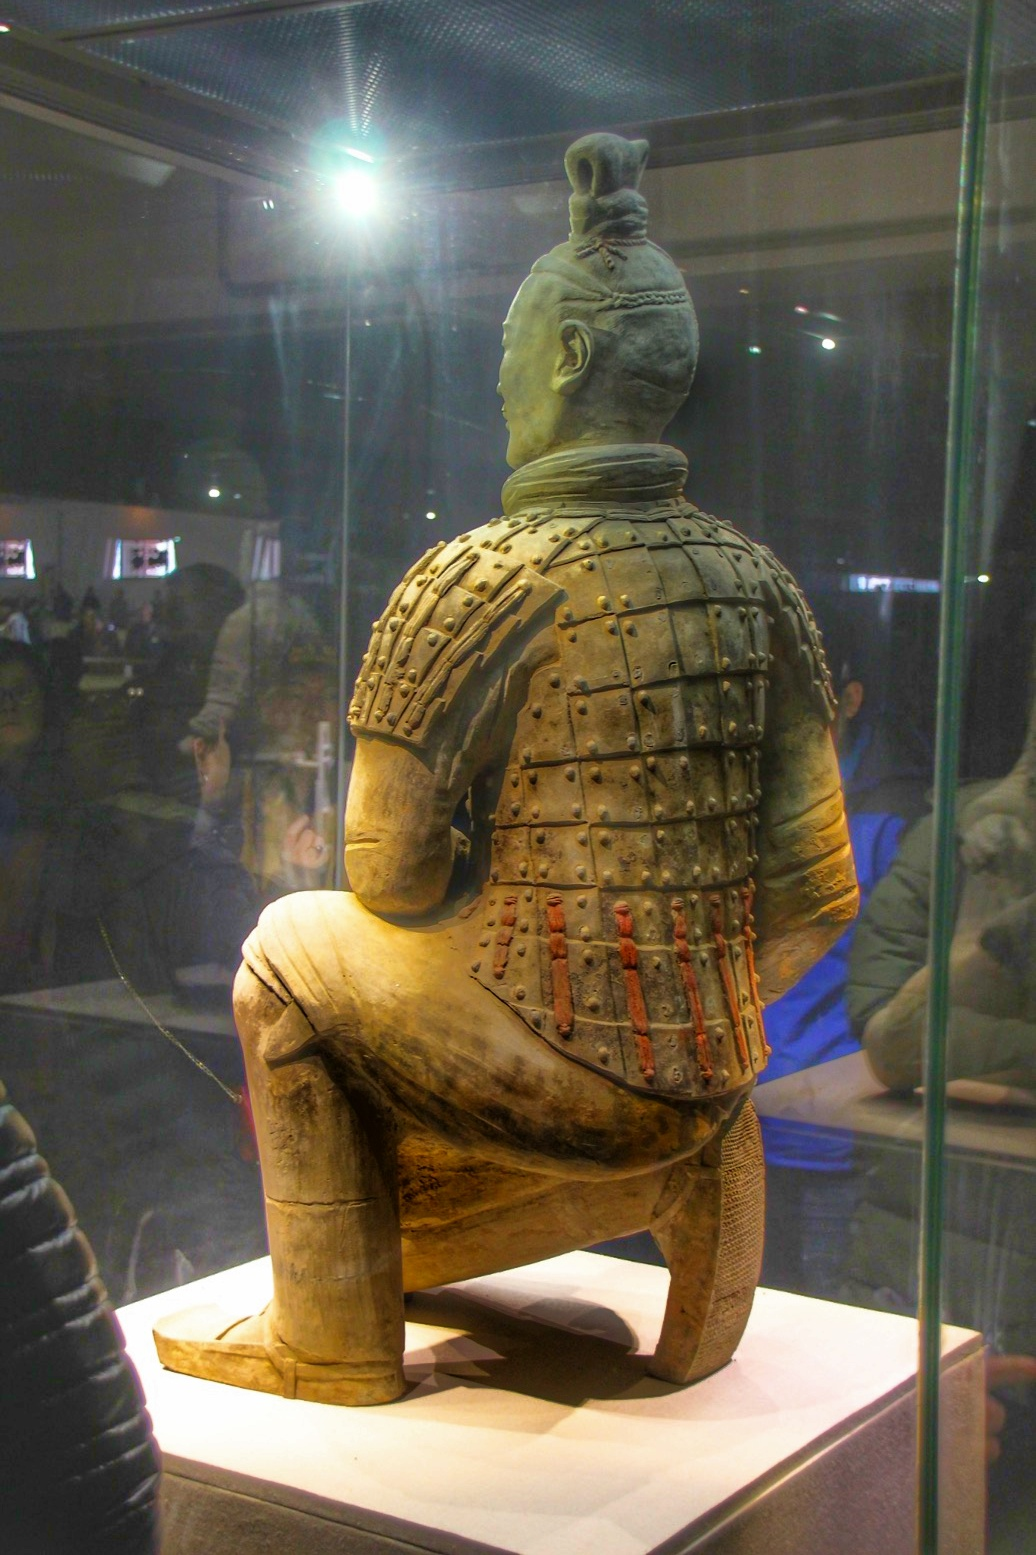 The terracotta soldiers were initially painted in various colors, this archer still exhibits the red stripes.